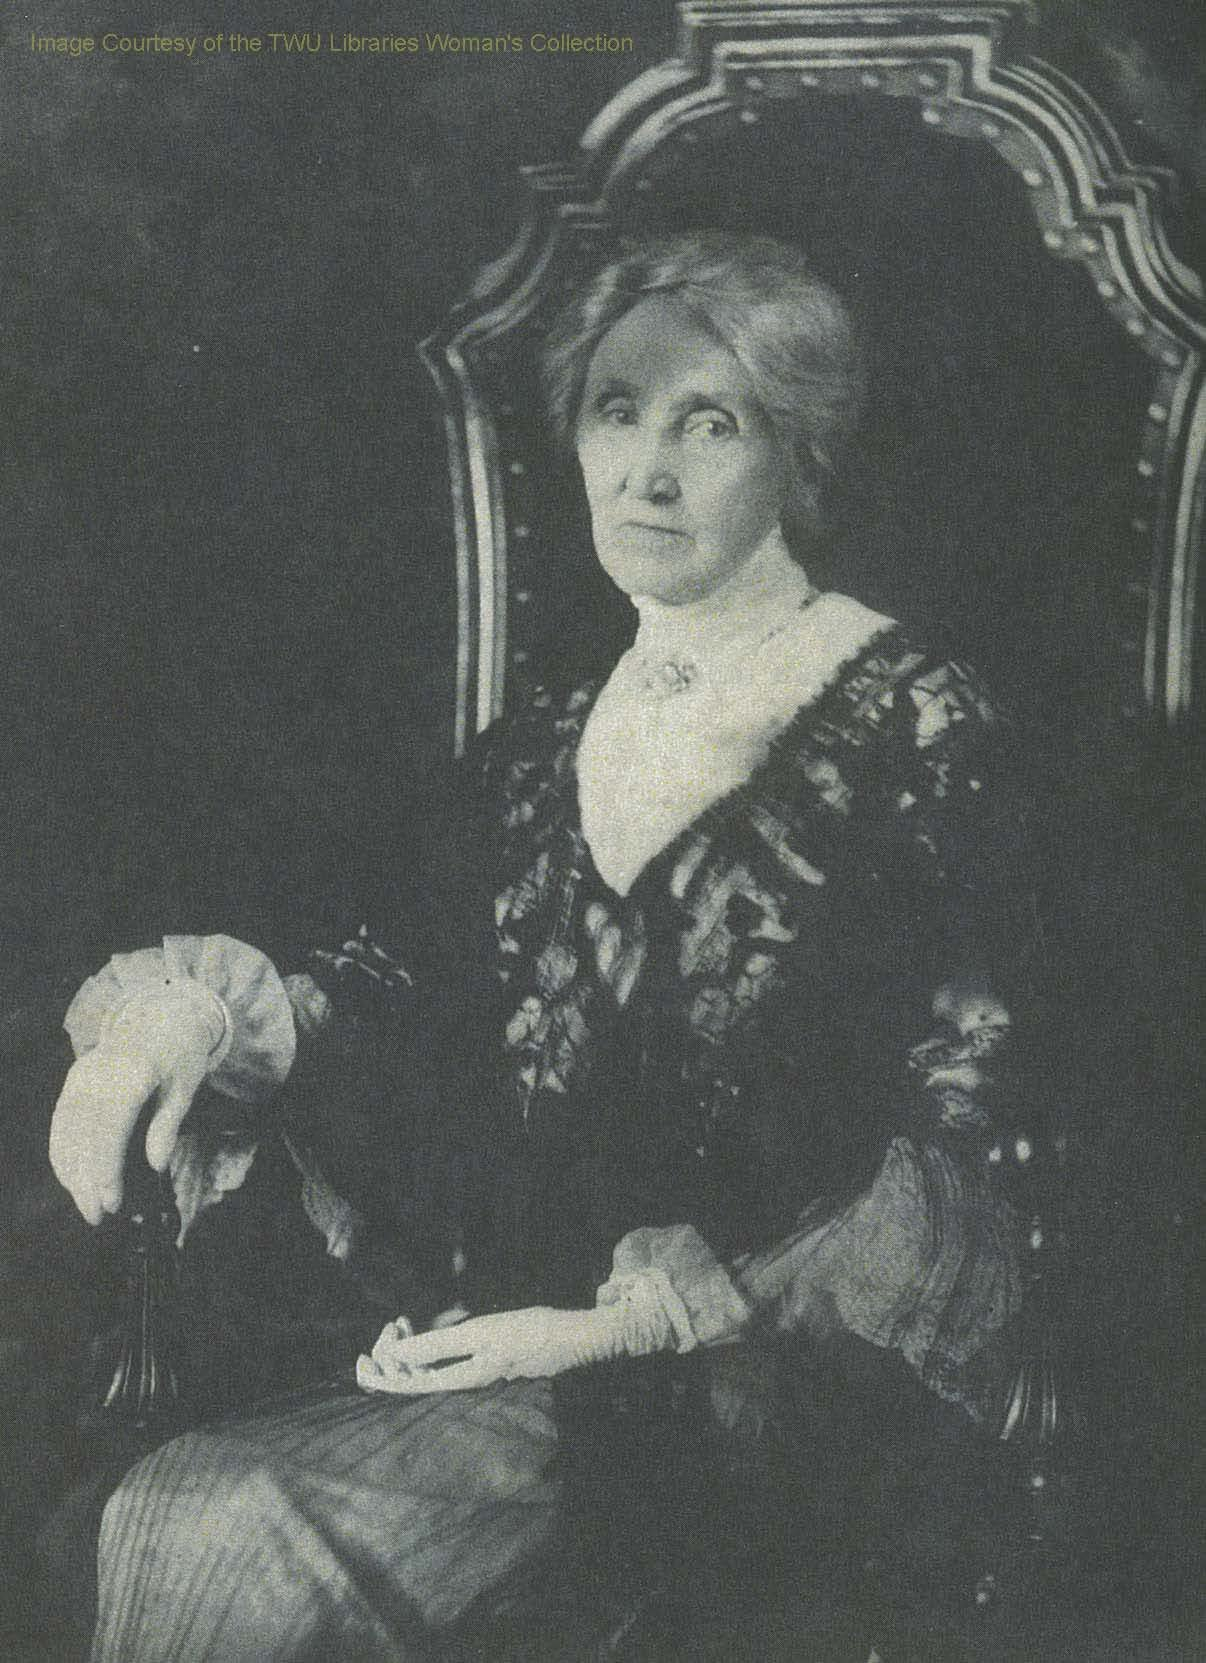 Mary Eleanor Brackenridge: The student union's namesake, and a pioneer for women's rights.